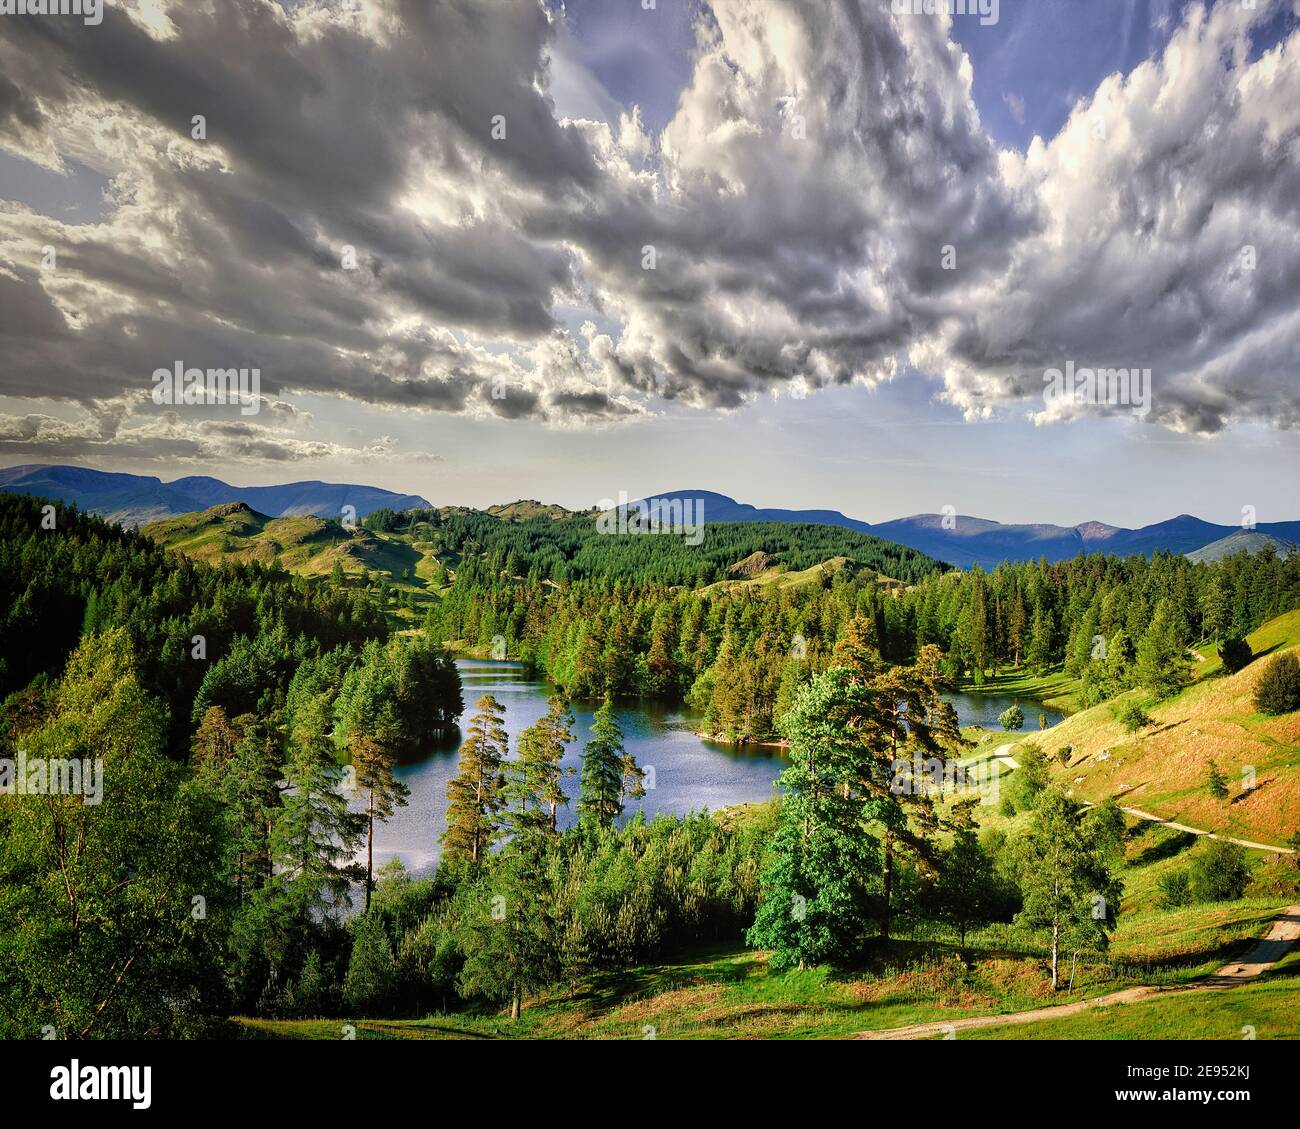 GB - CUMBRIA: Tarn Hows in the Lake District National Park Stock Photo